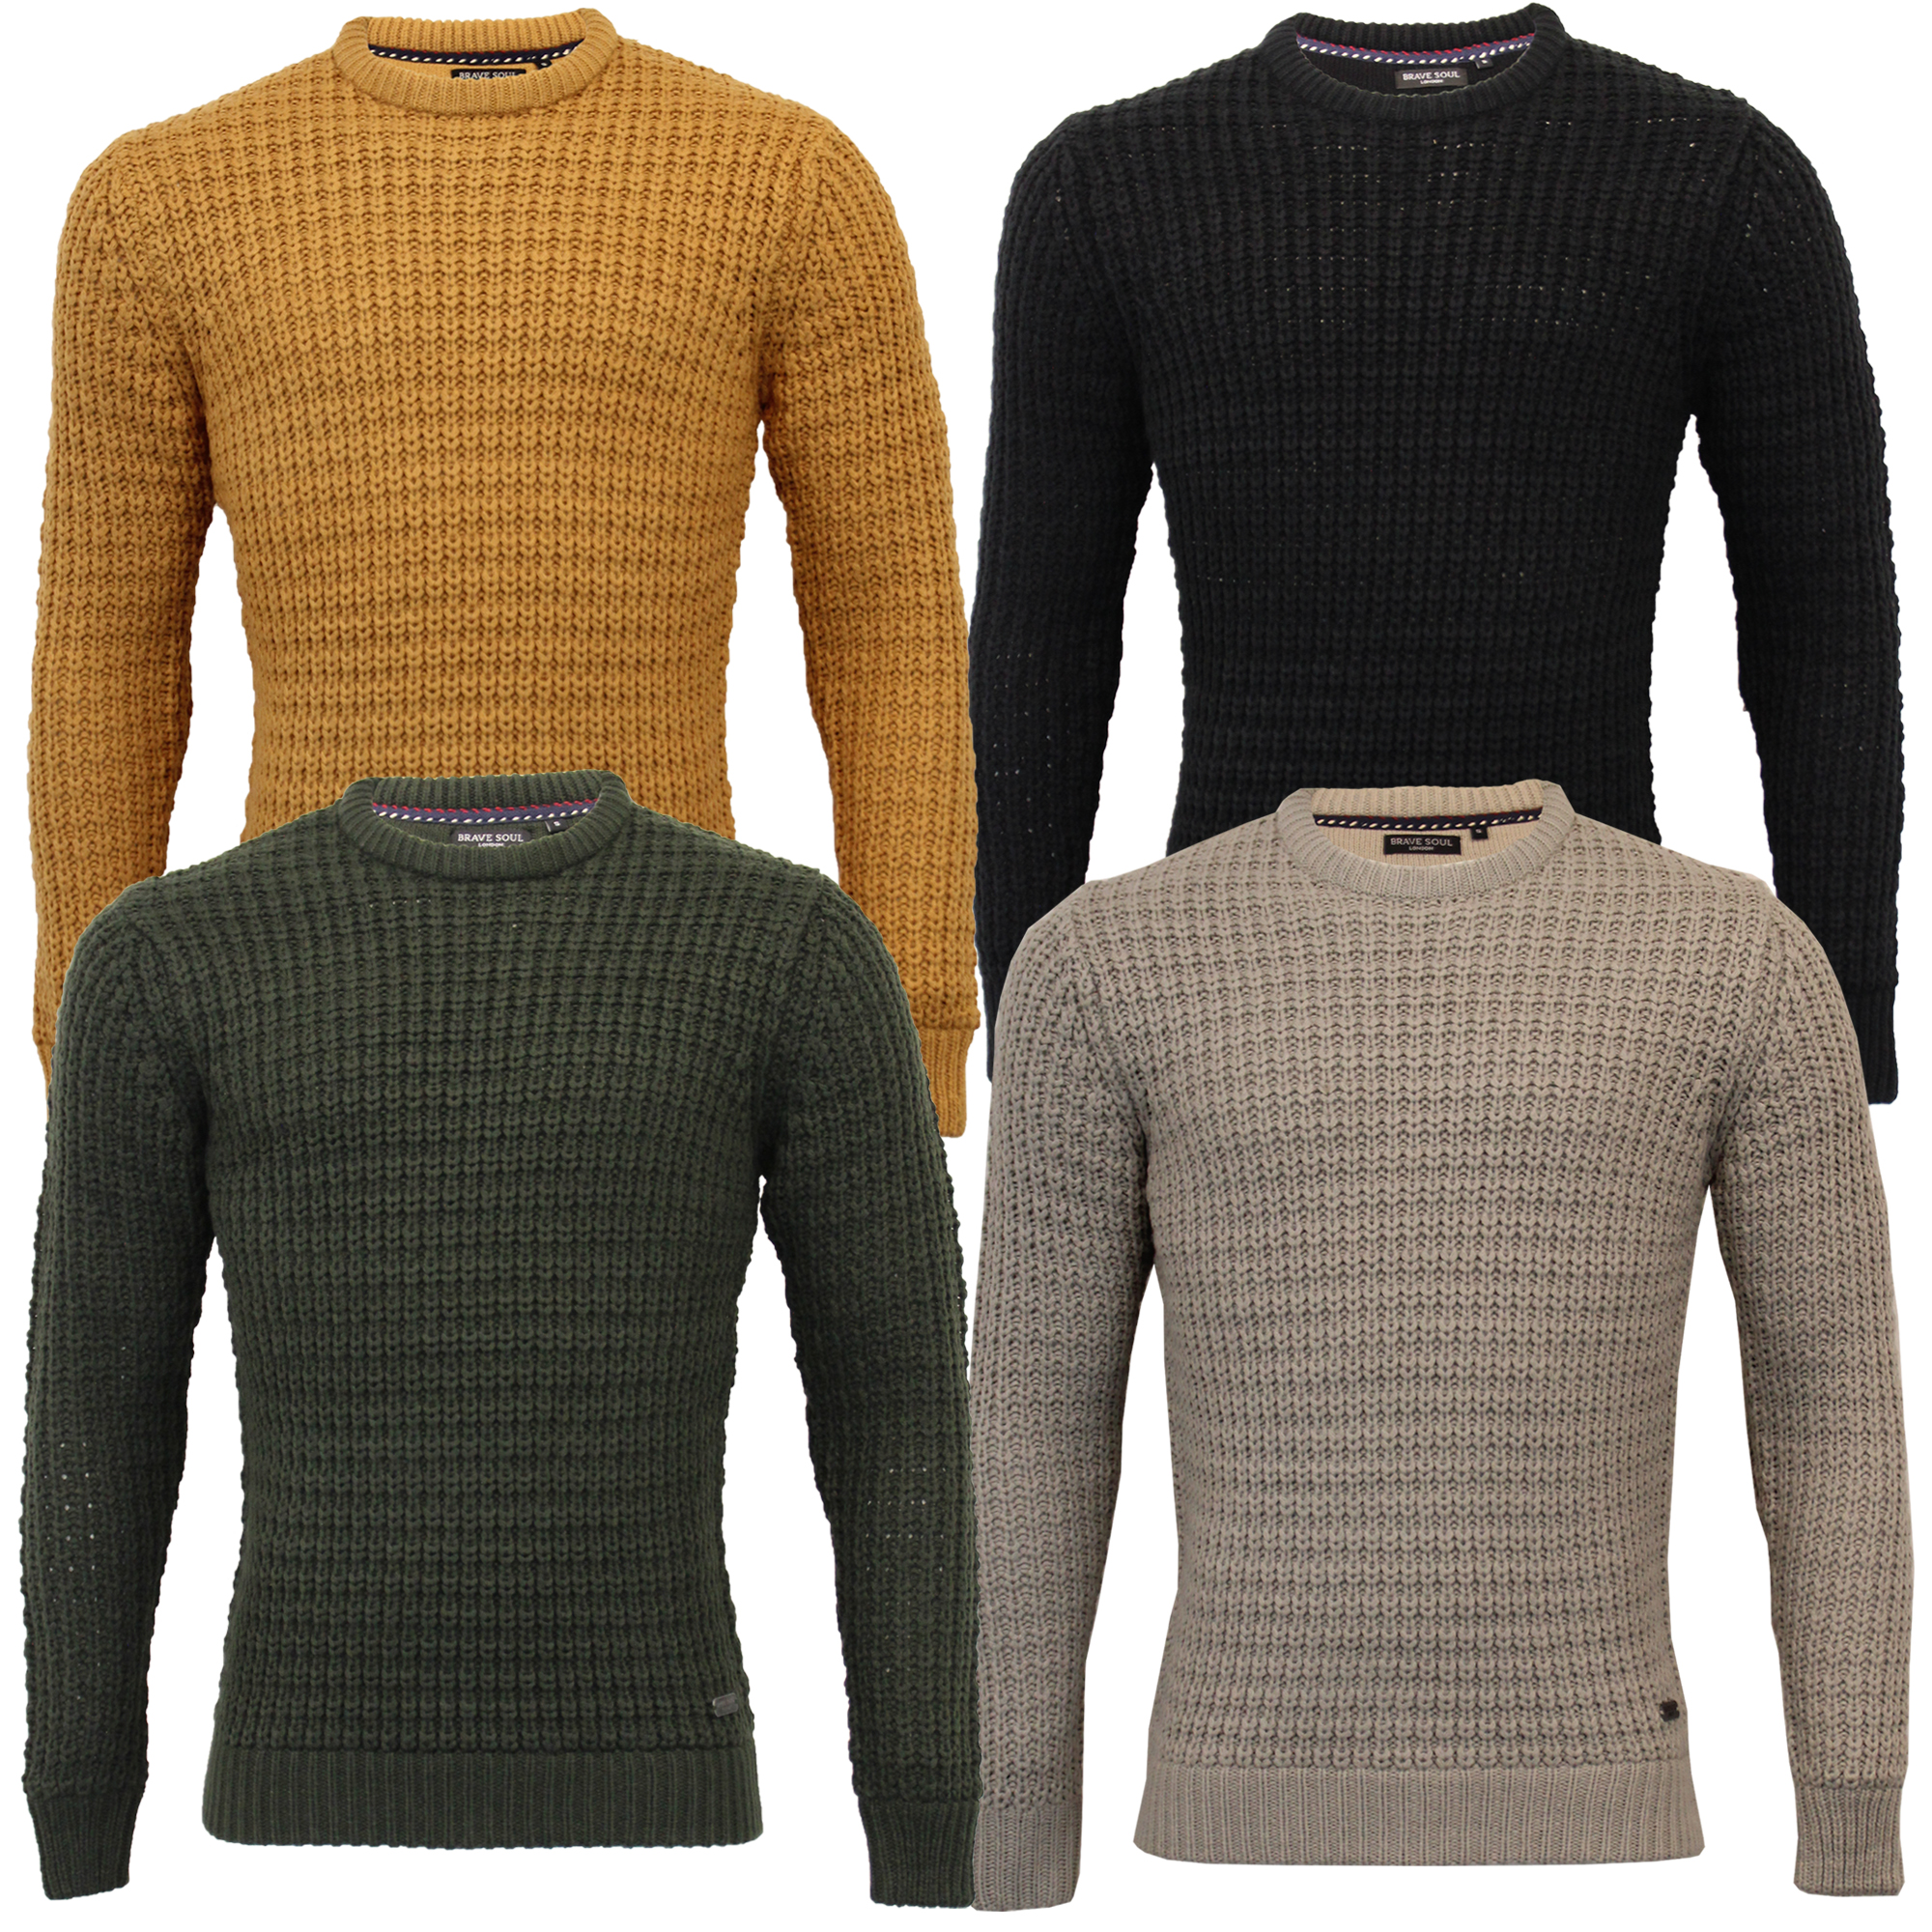 Mens-Cable-Knitted-Jumper-Brave-Soul-DIRAC-Crew-Neck-Pullover-Top-Winter-Fashion thumbnail 4